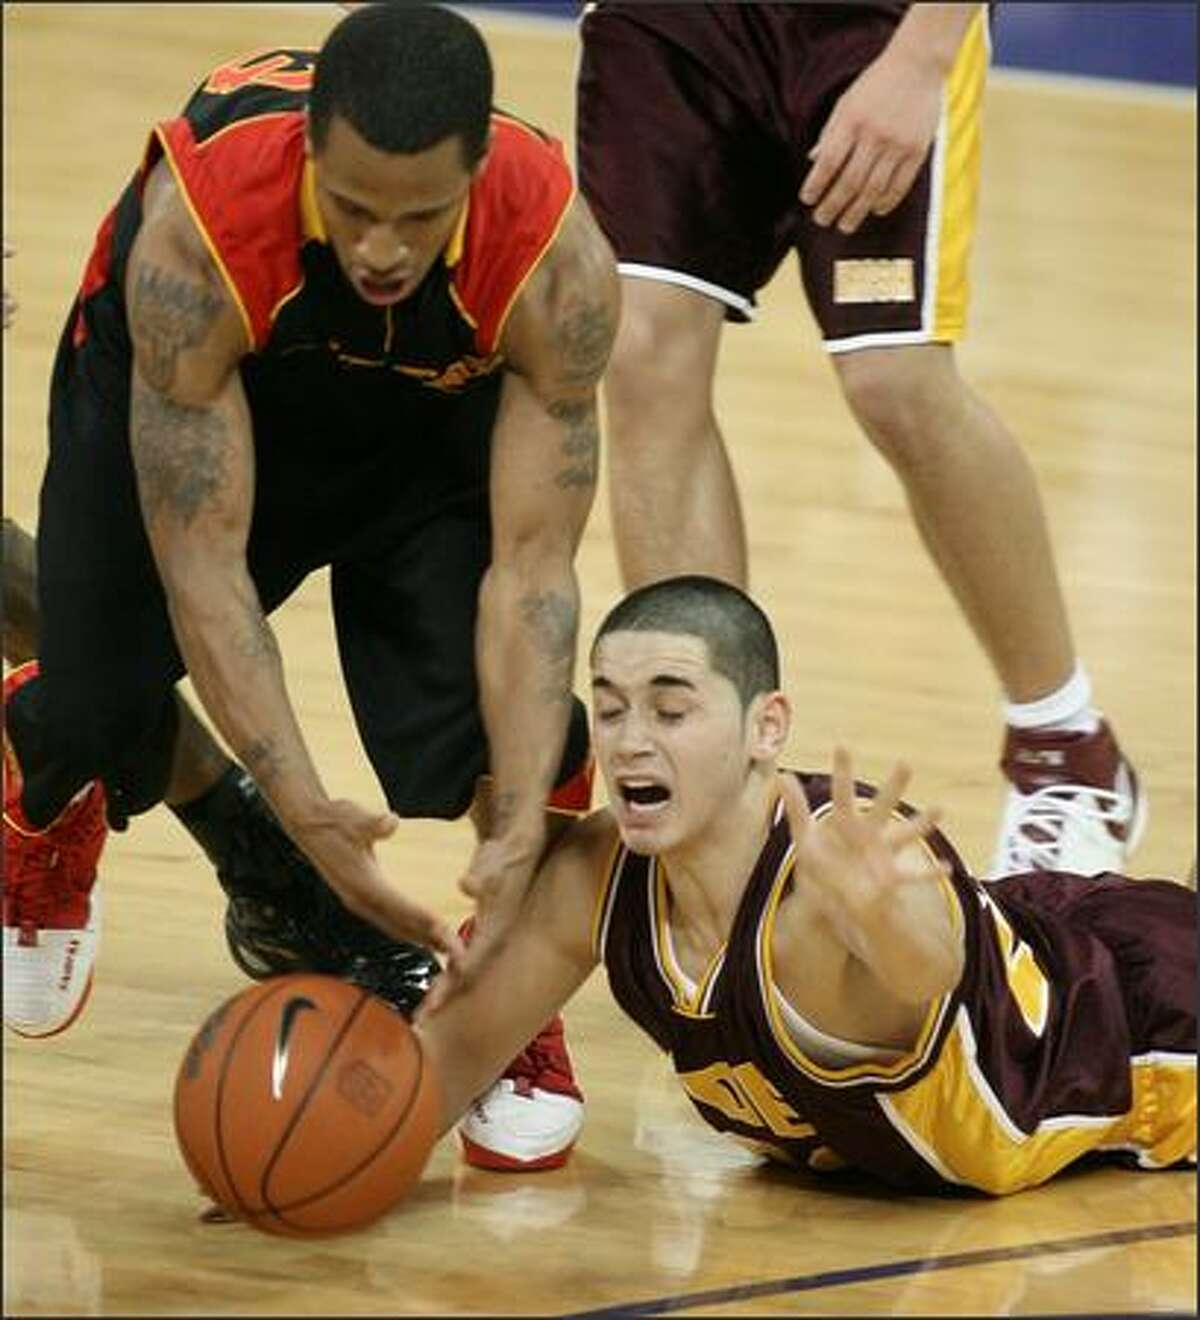 Chris Banchero, right, and O'Dea came up short against Fairfax of Los Angeles.